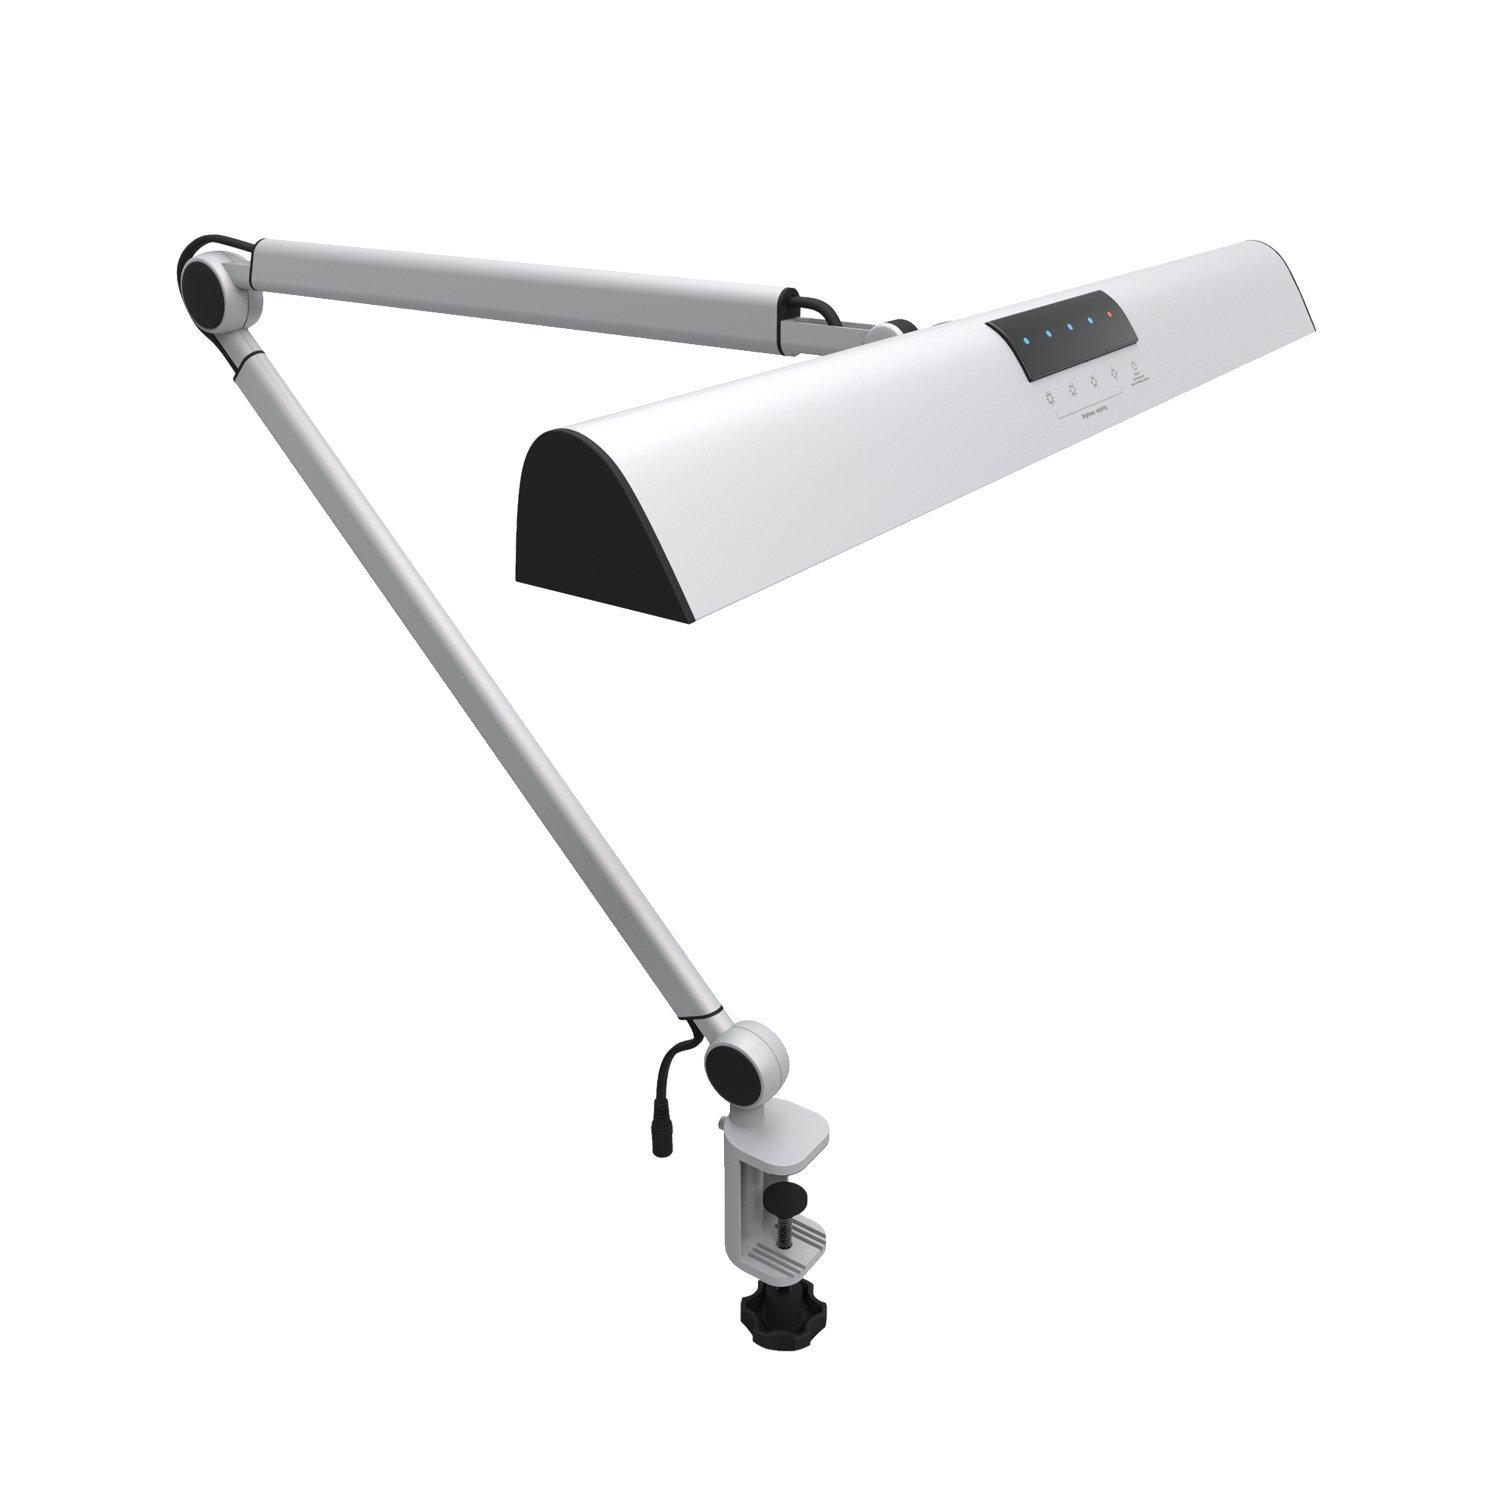 A509 LED Swing Arm Architect Desk Lamp Clamp, Touch Table Lamp for Reading Working Silver 2 Lighting Modes, 4-level Dimmable